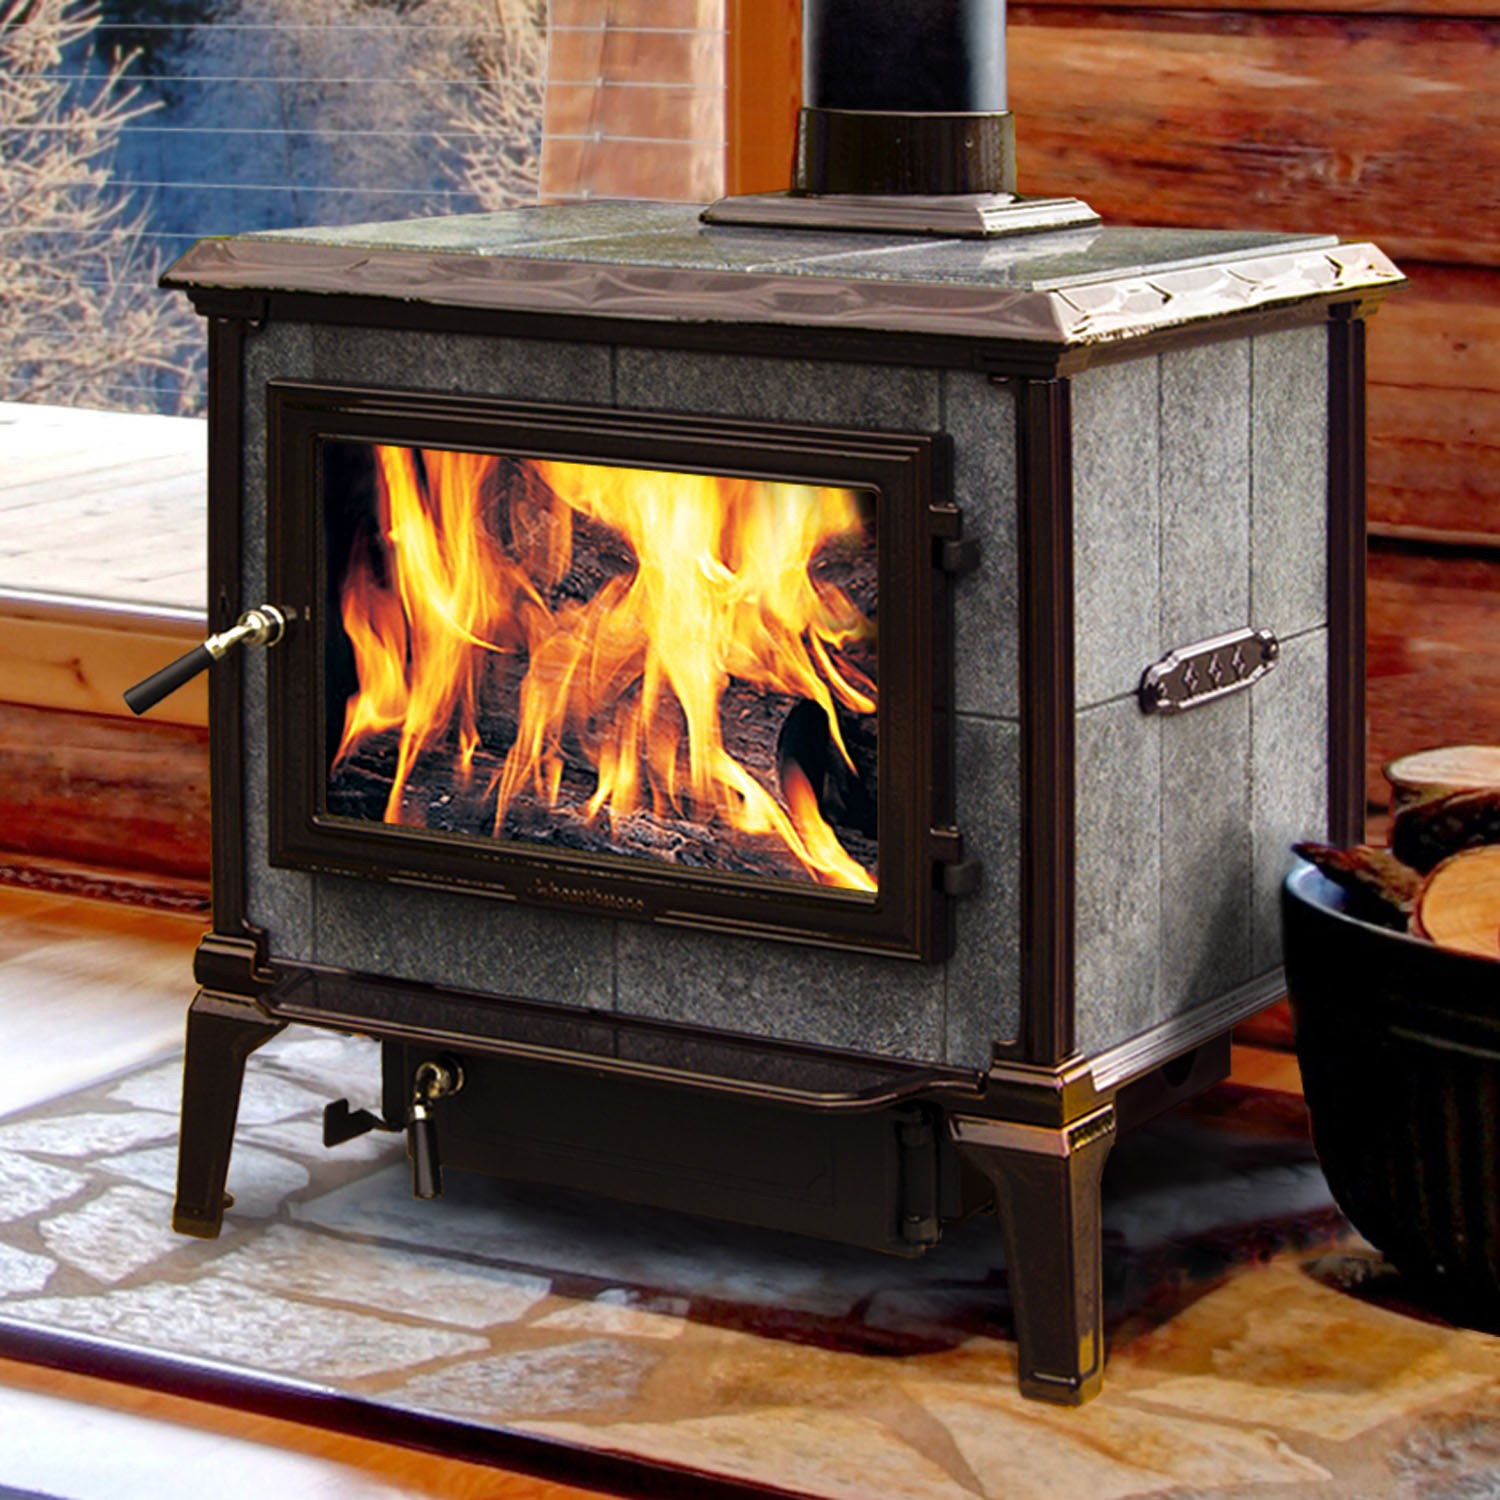 A full review of Hearthstone wood stoves.  Learn about the benefits of a soapstone stove and determine if it